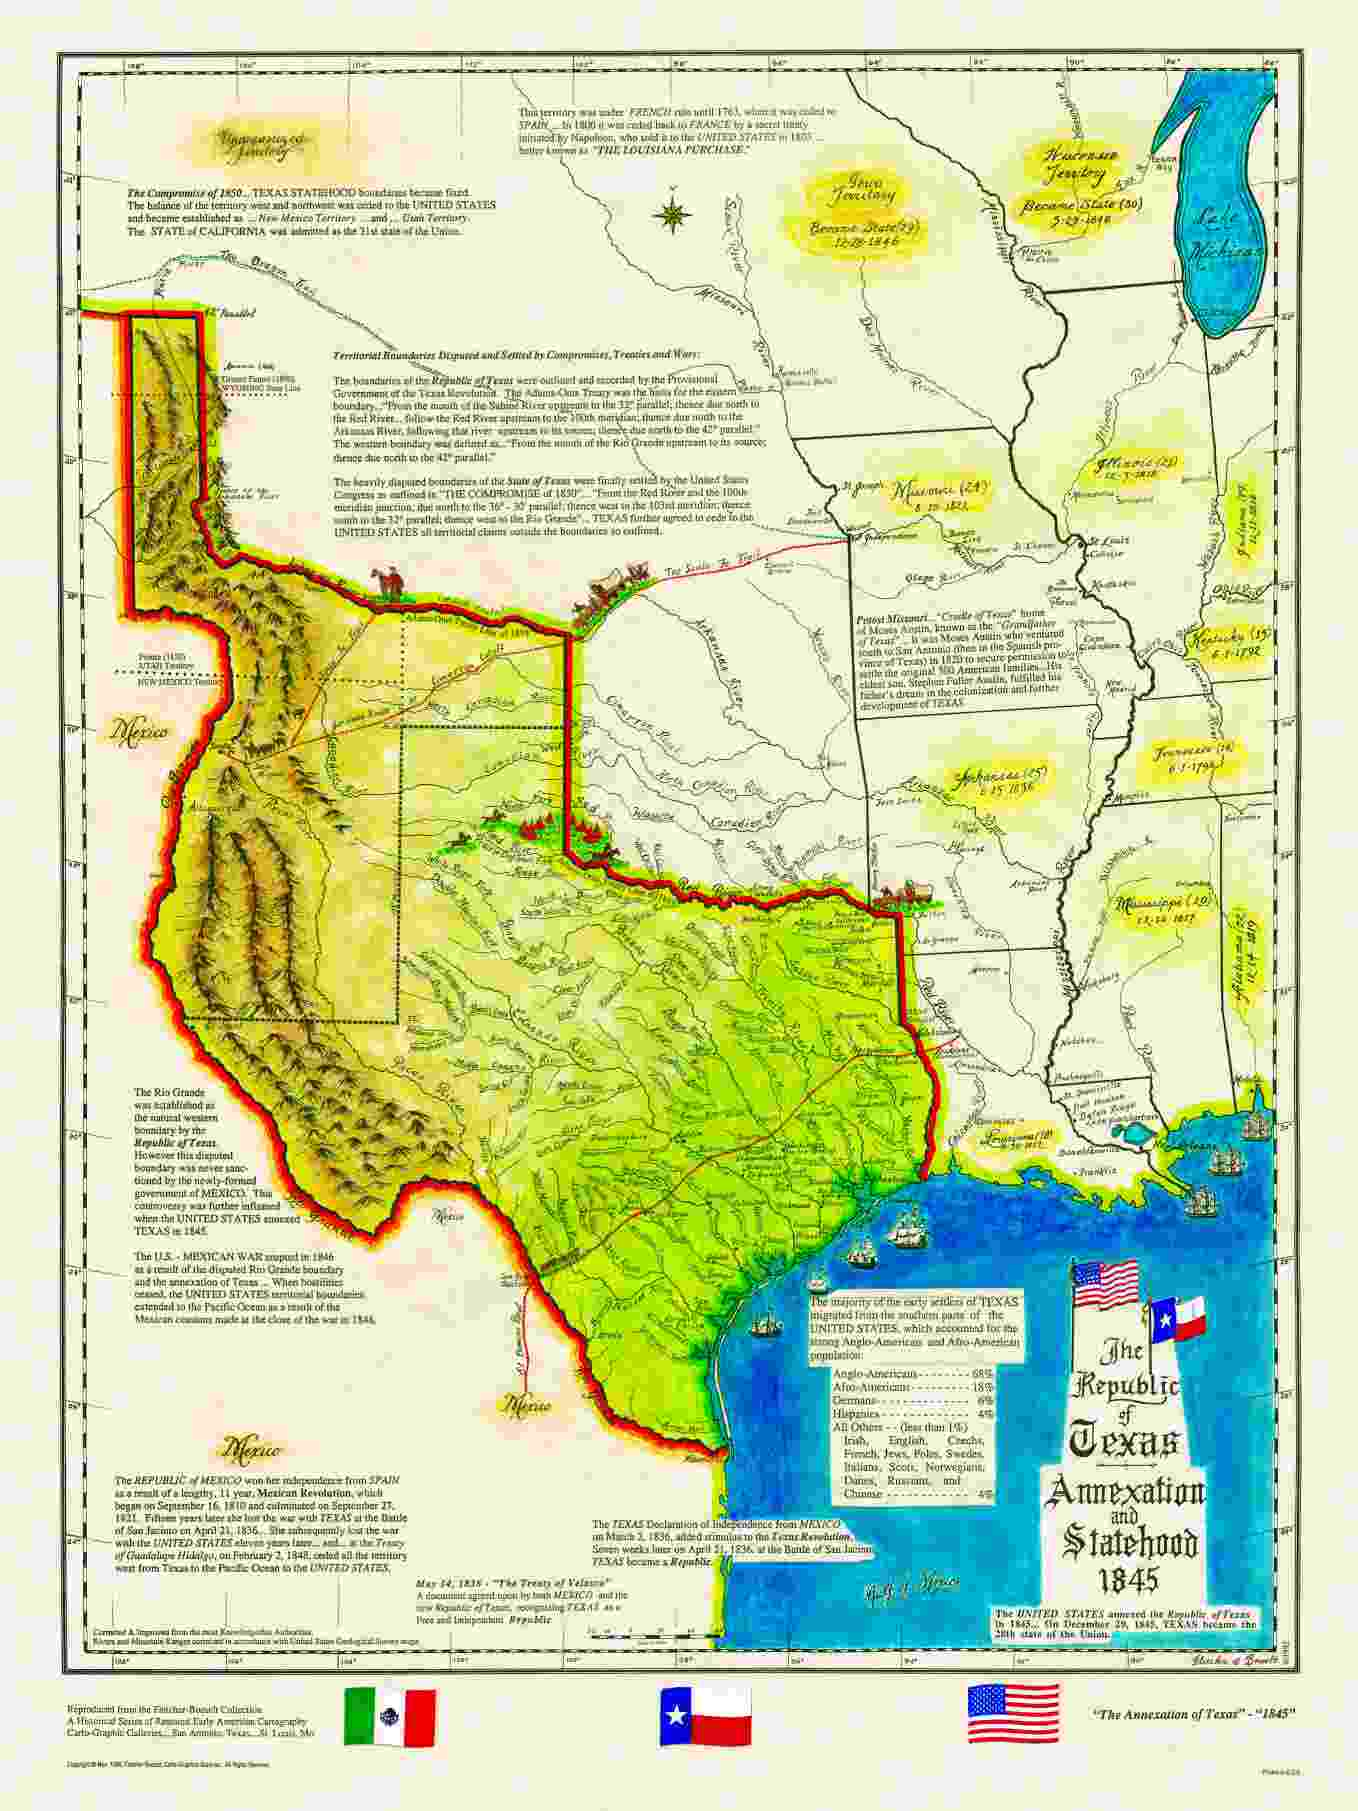 Historical Texas Maps, Texana Series